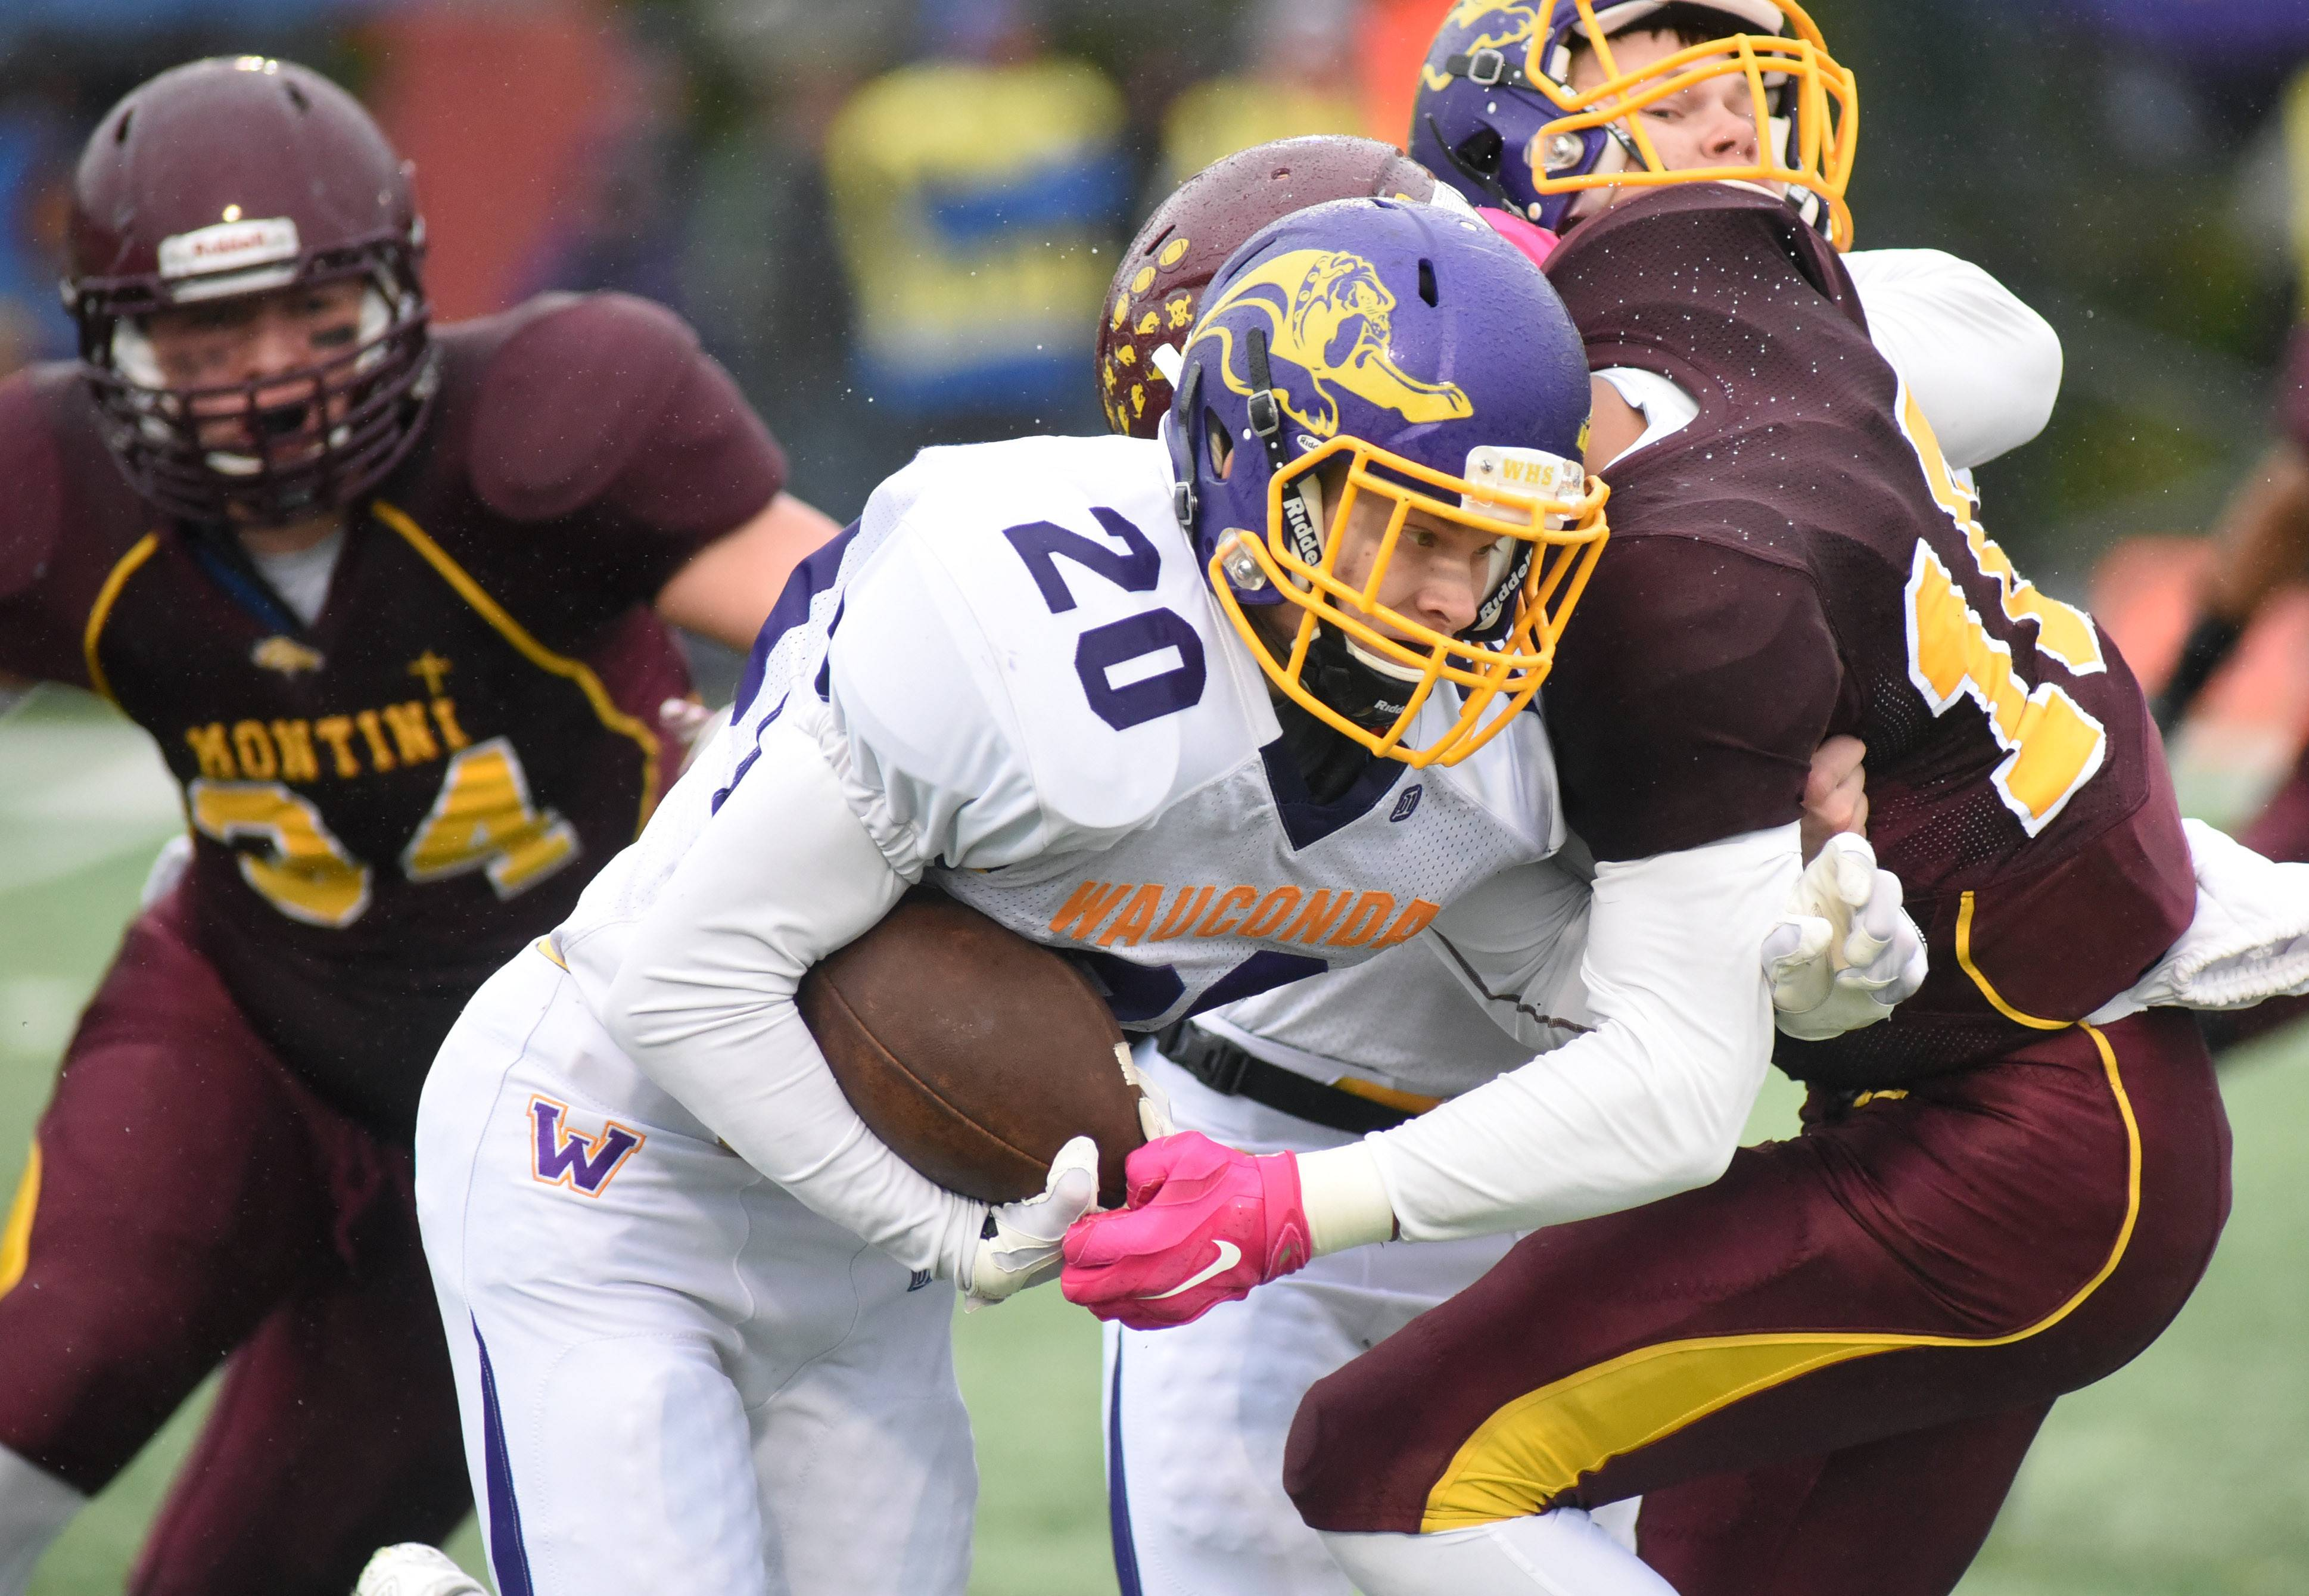 Wauconda doubles down on playoff goal